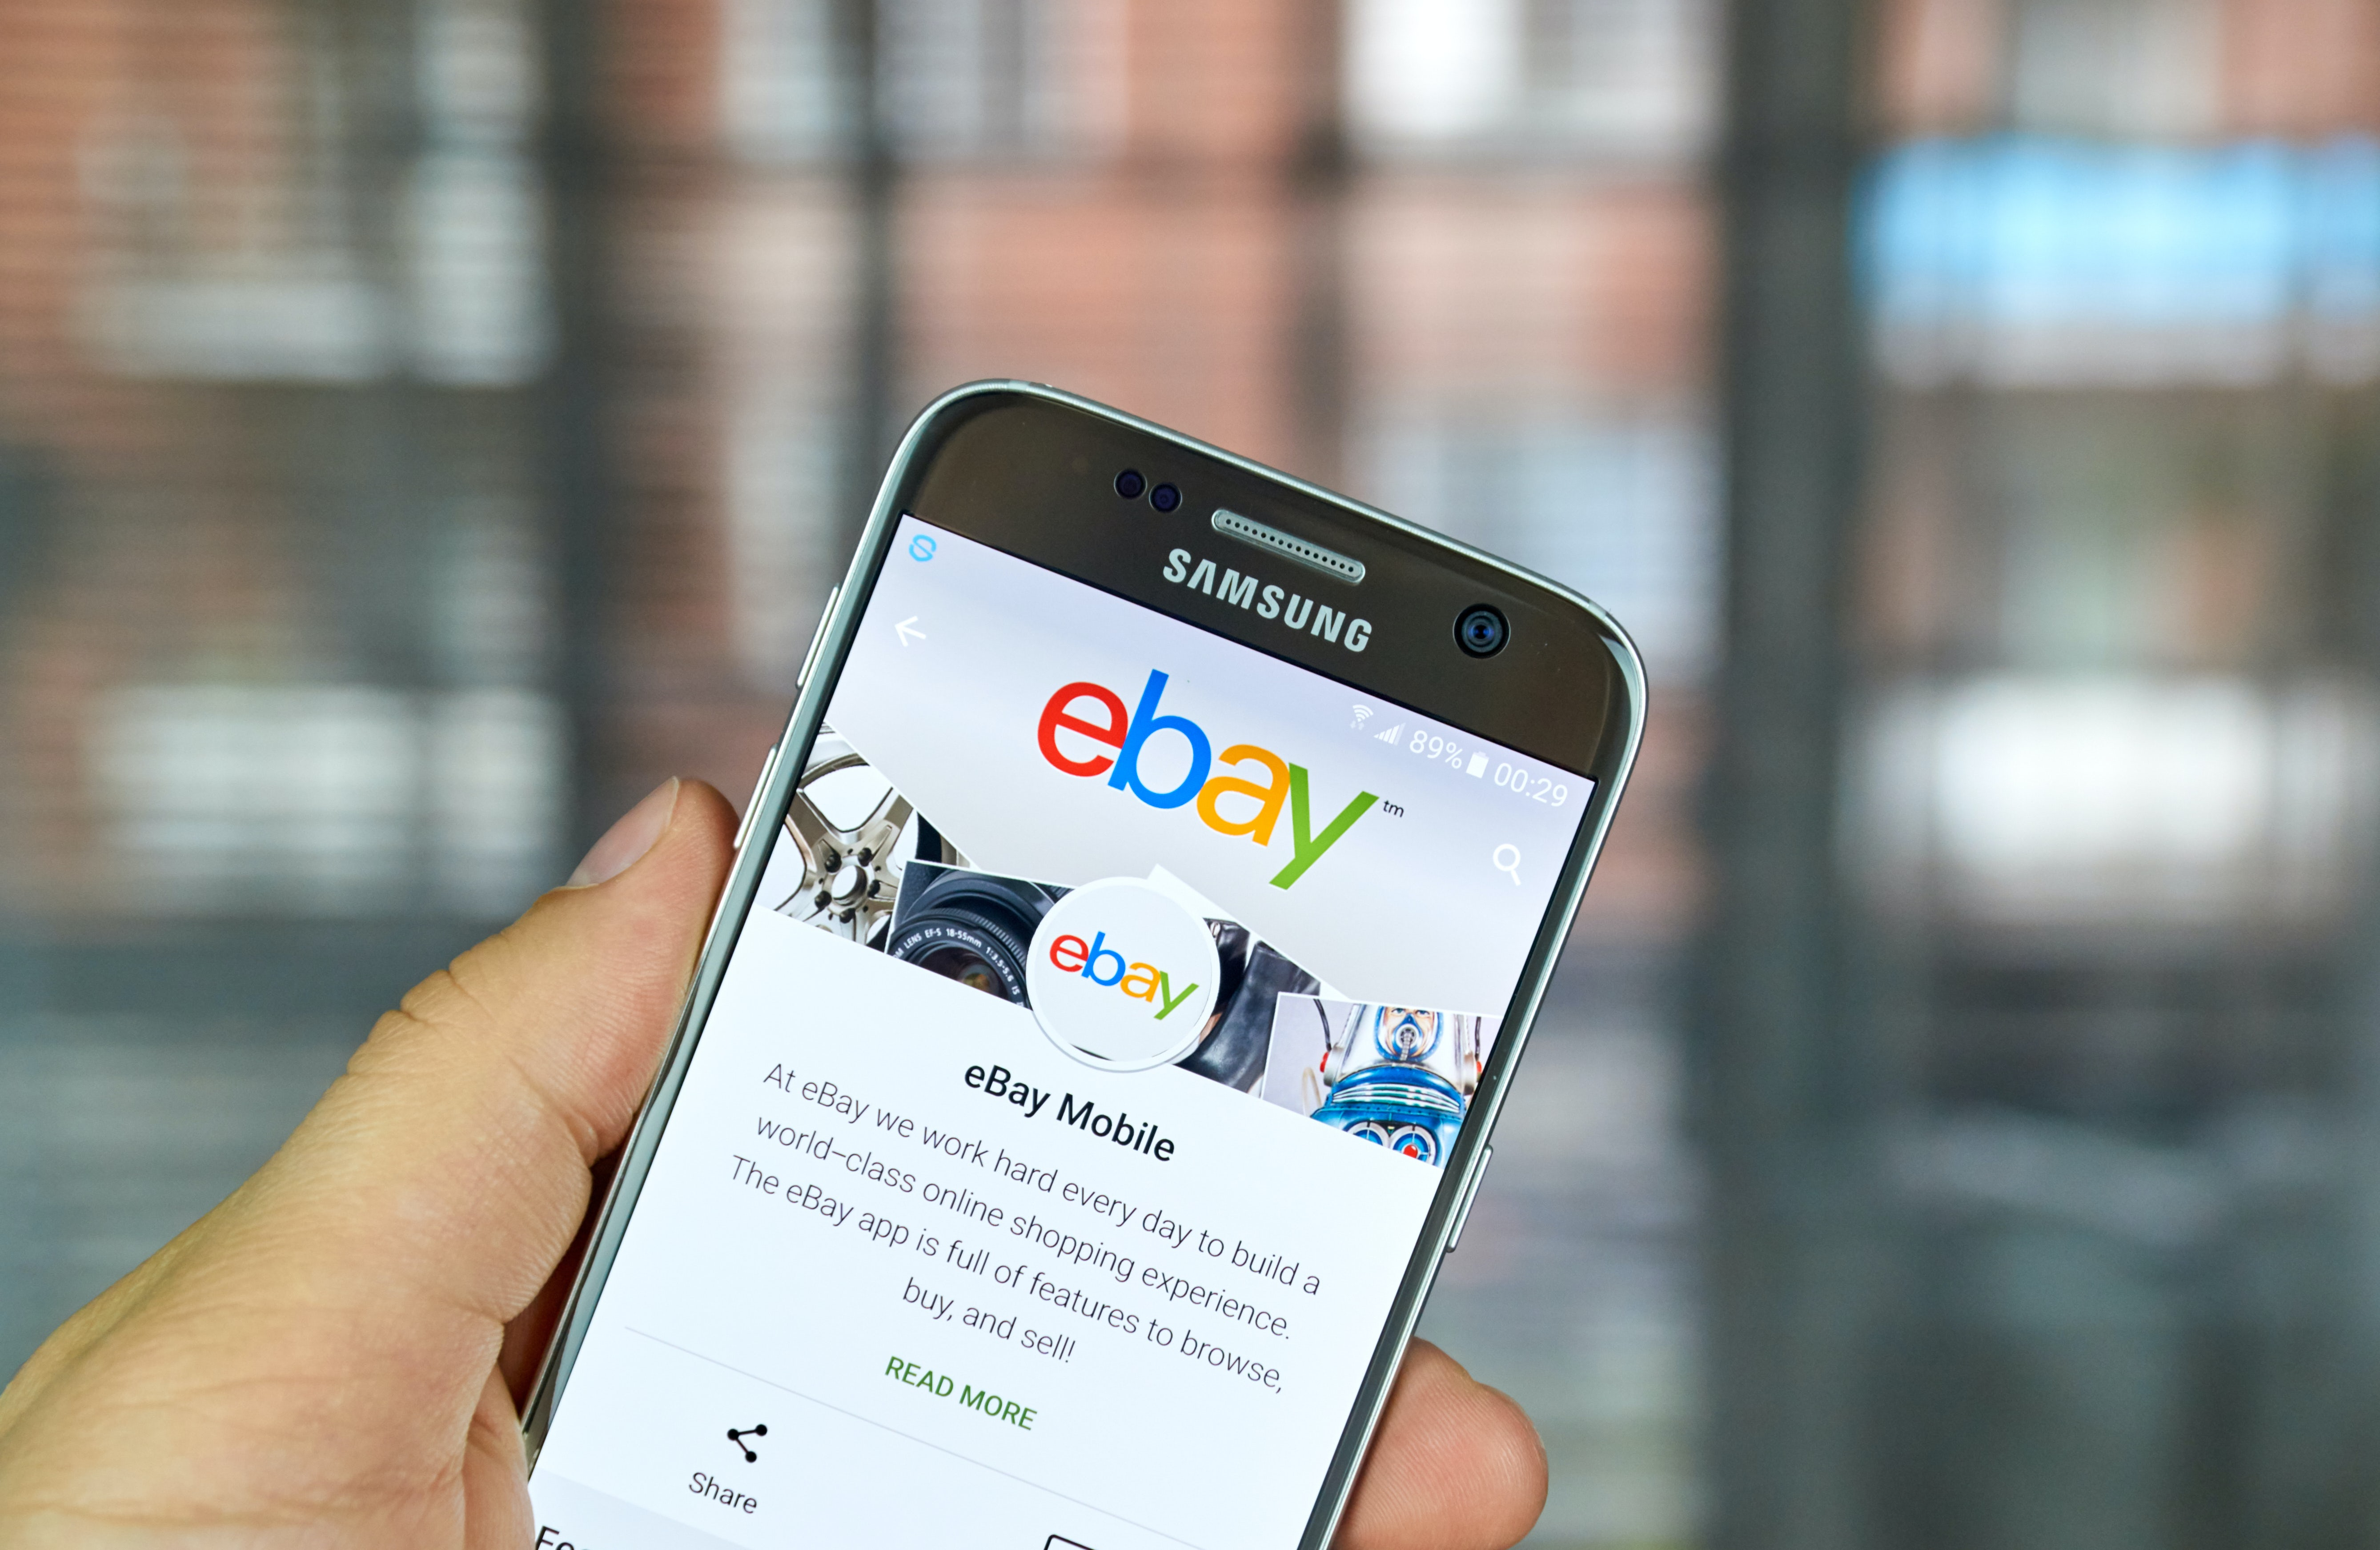 Ebay Wants To Make Mobile Wednesday A Thing Good Luck With That